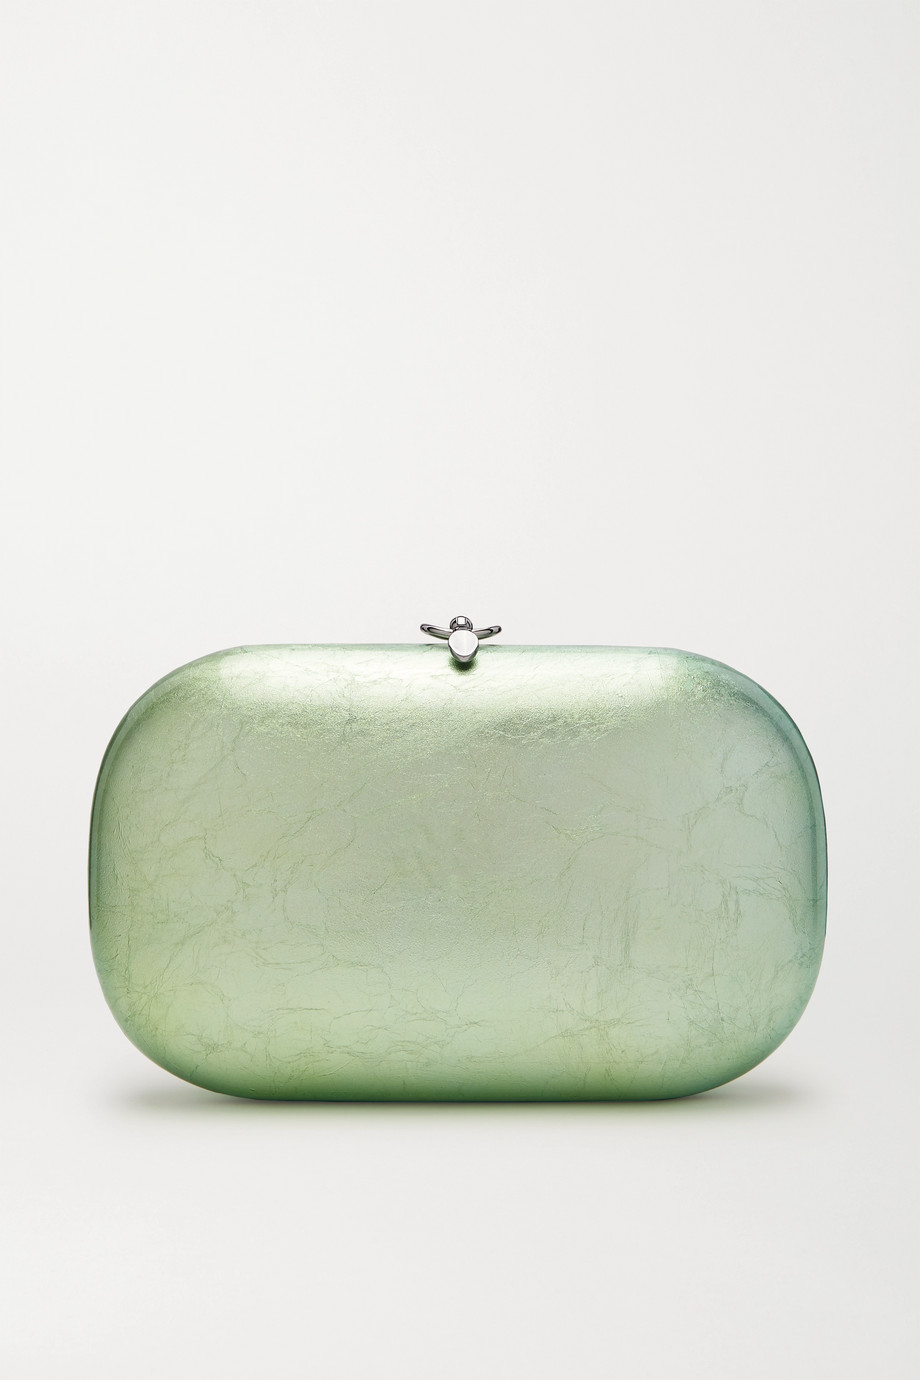 Jeffrey Levinson Elina PLUS textured silver and enamel-plated chrome clutch